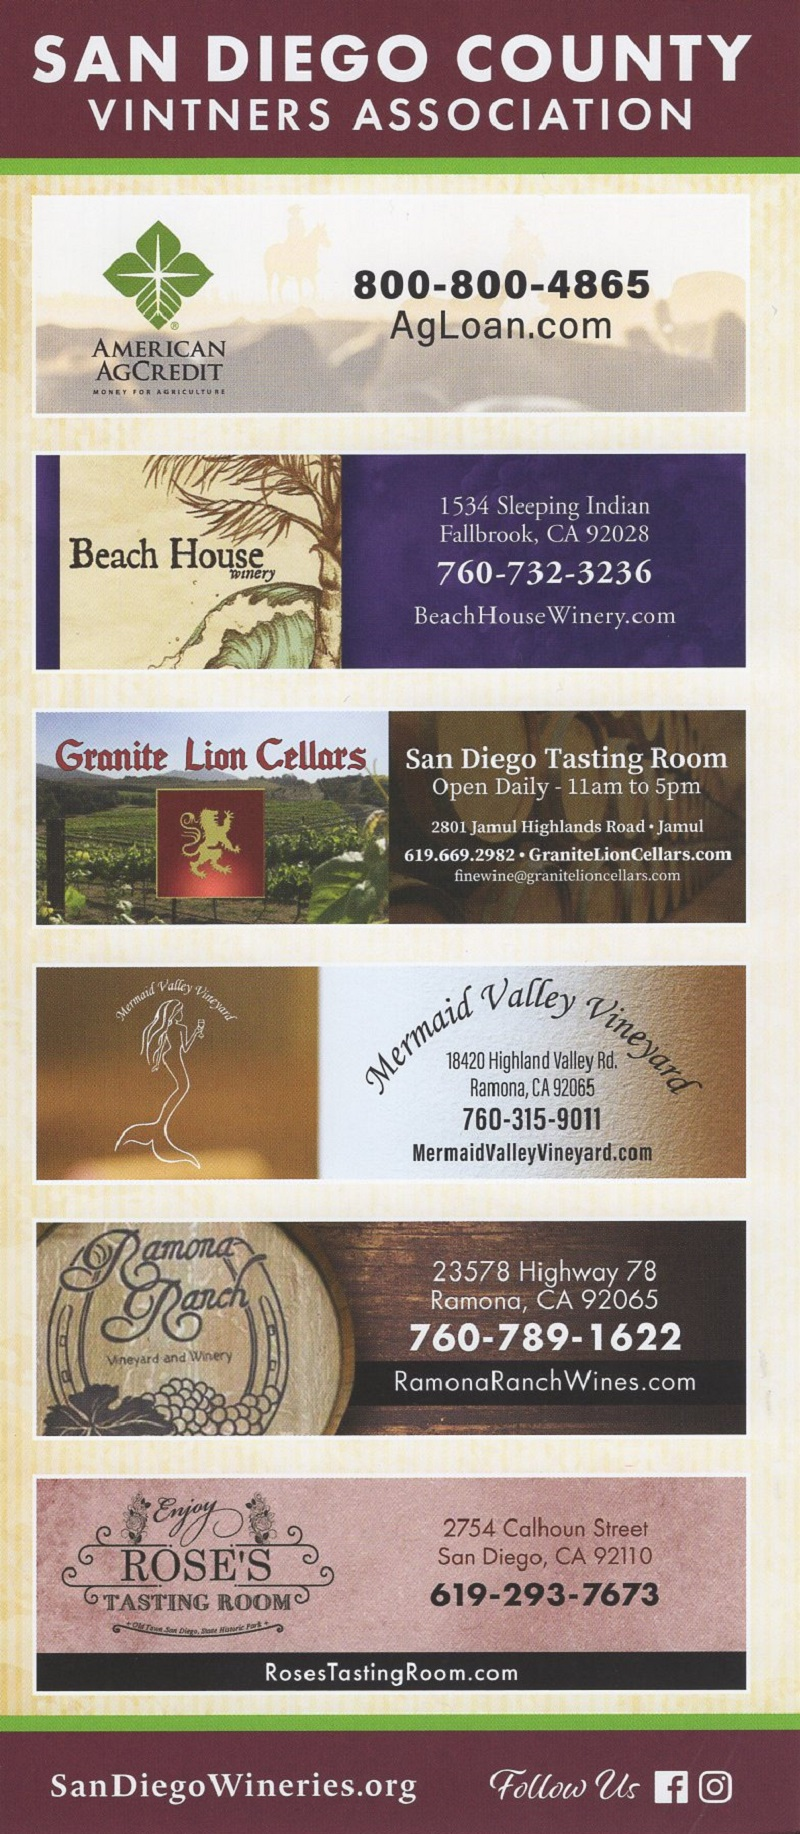 San Diego County Vintners Assn brochure full size